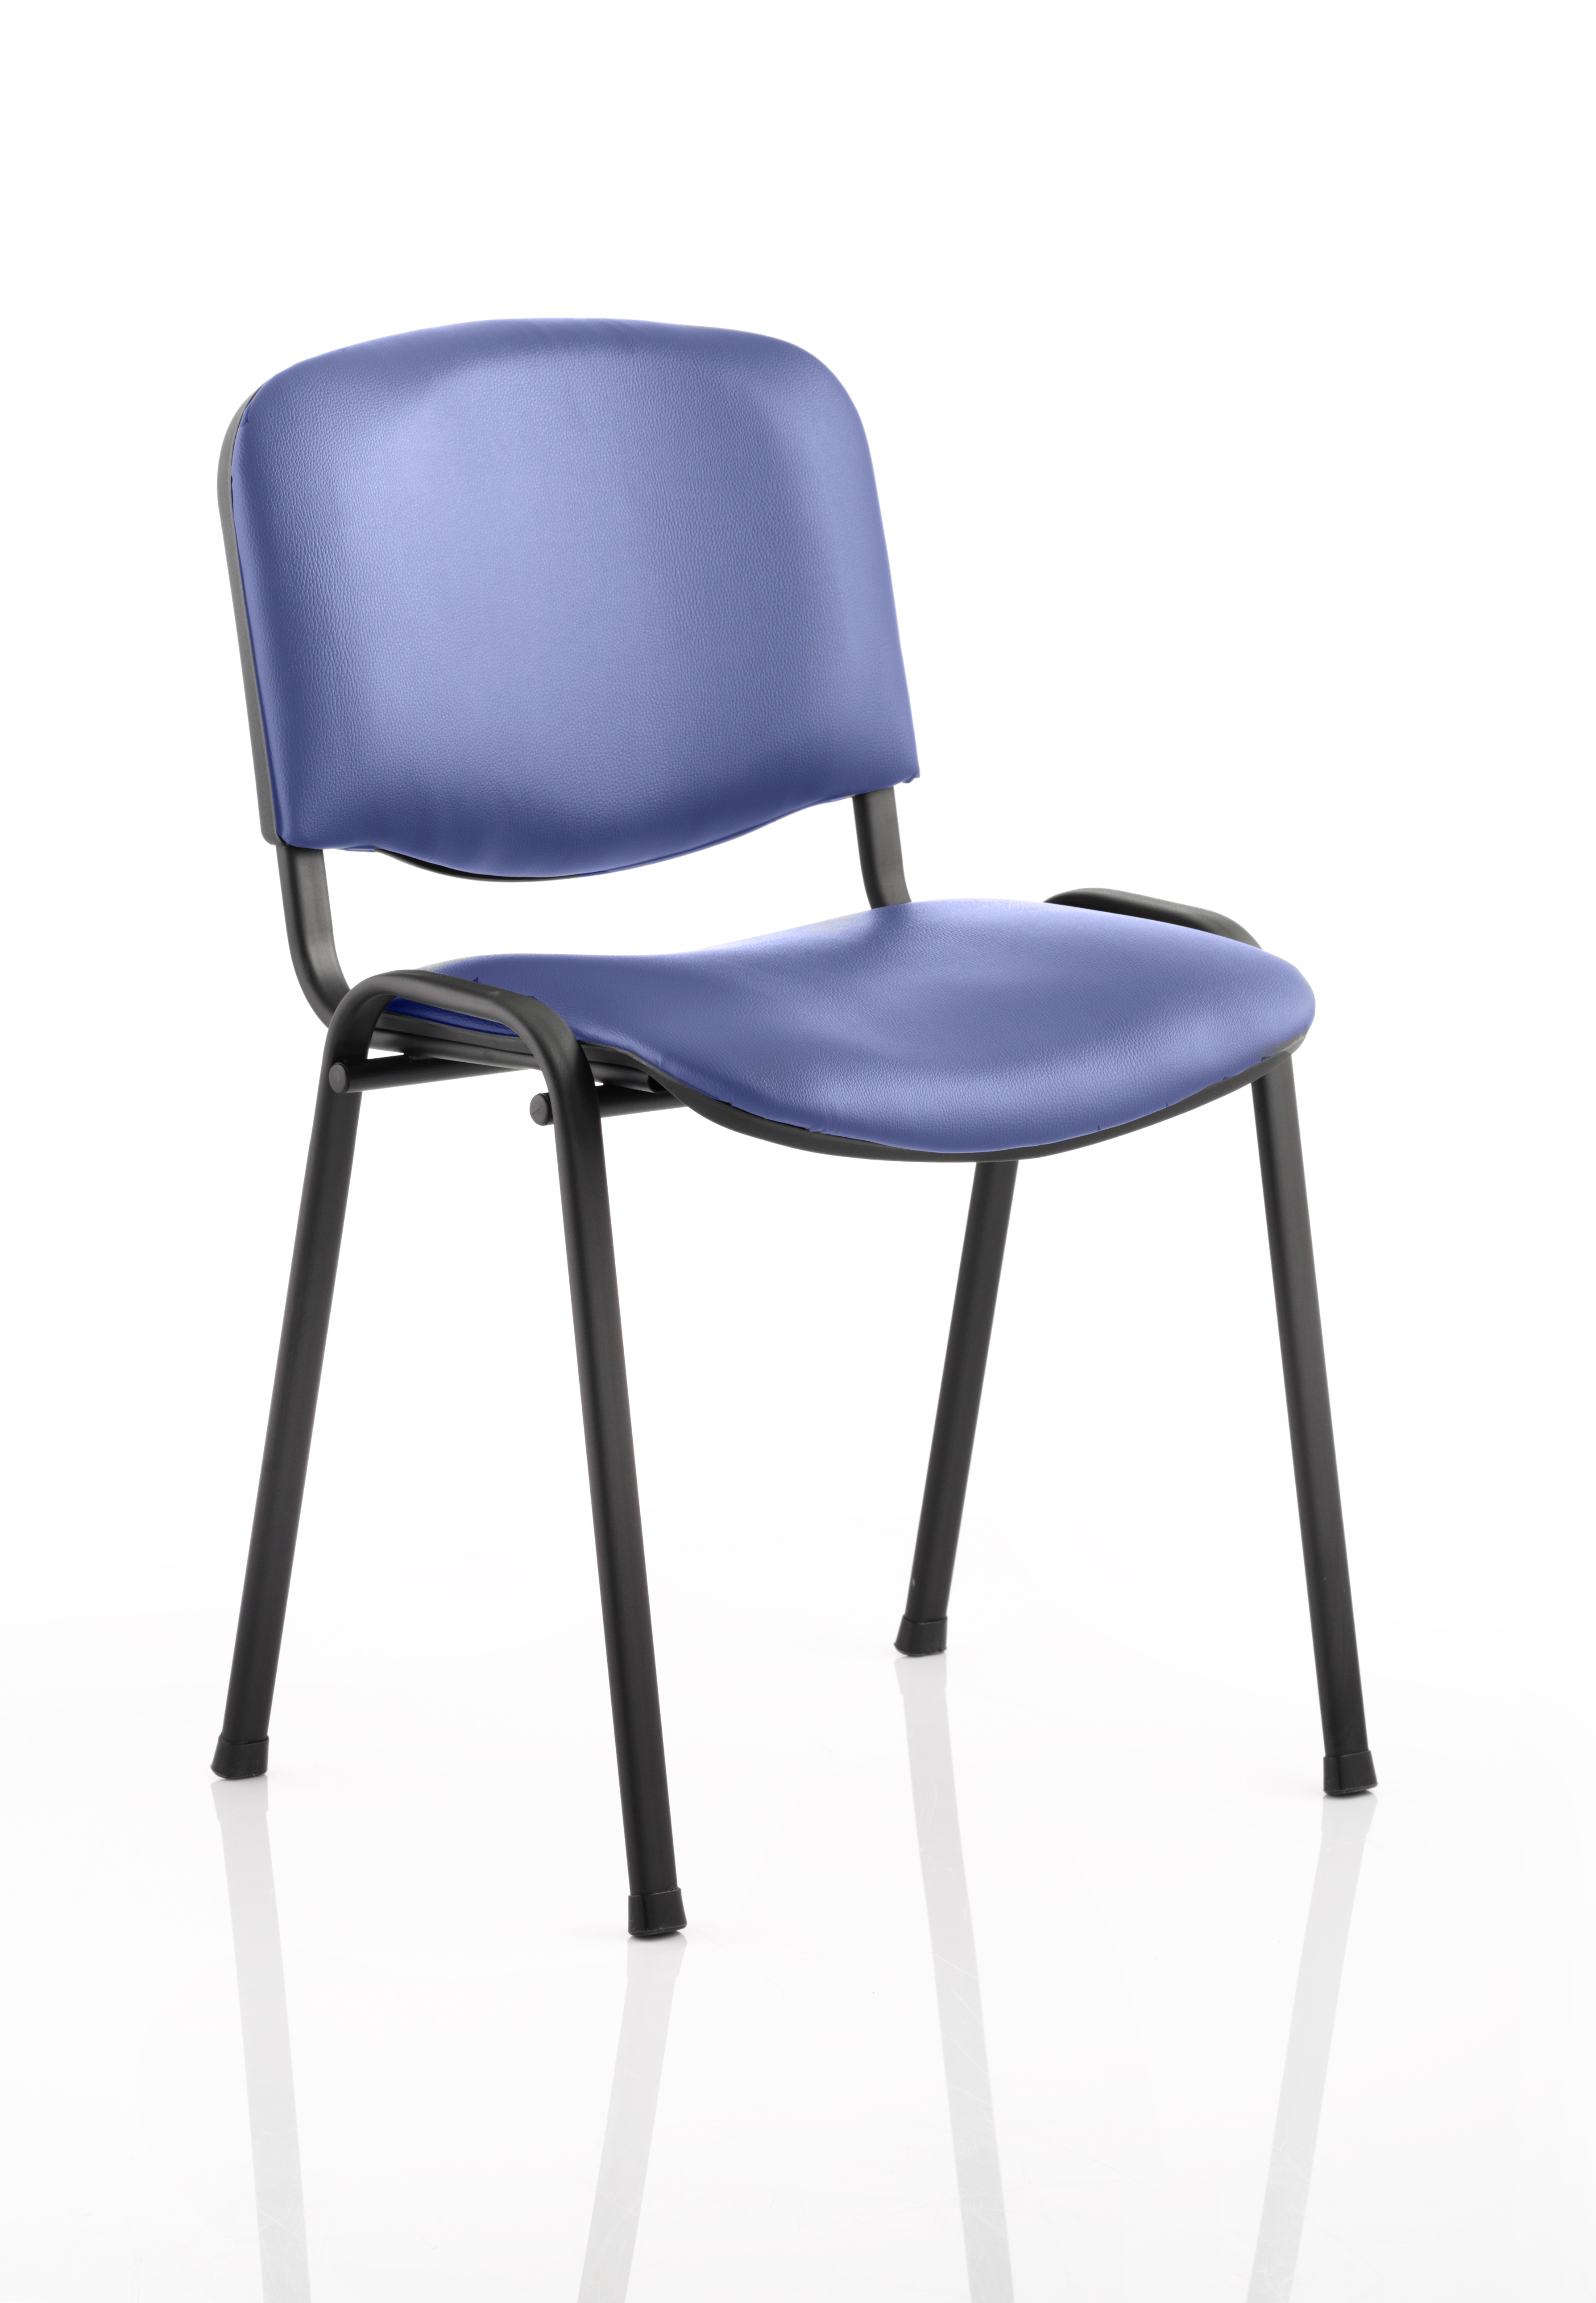 Stacking Chairs ISO Stacking Chair Blue Vinyl Black Frame BR000063